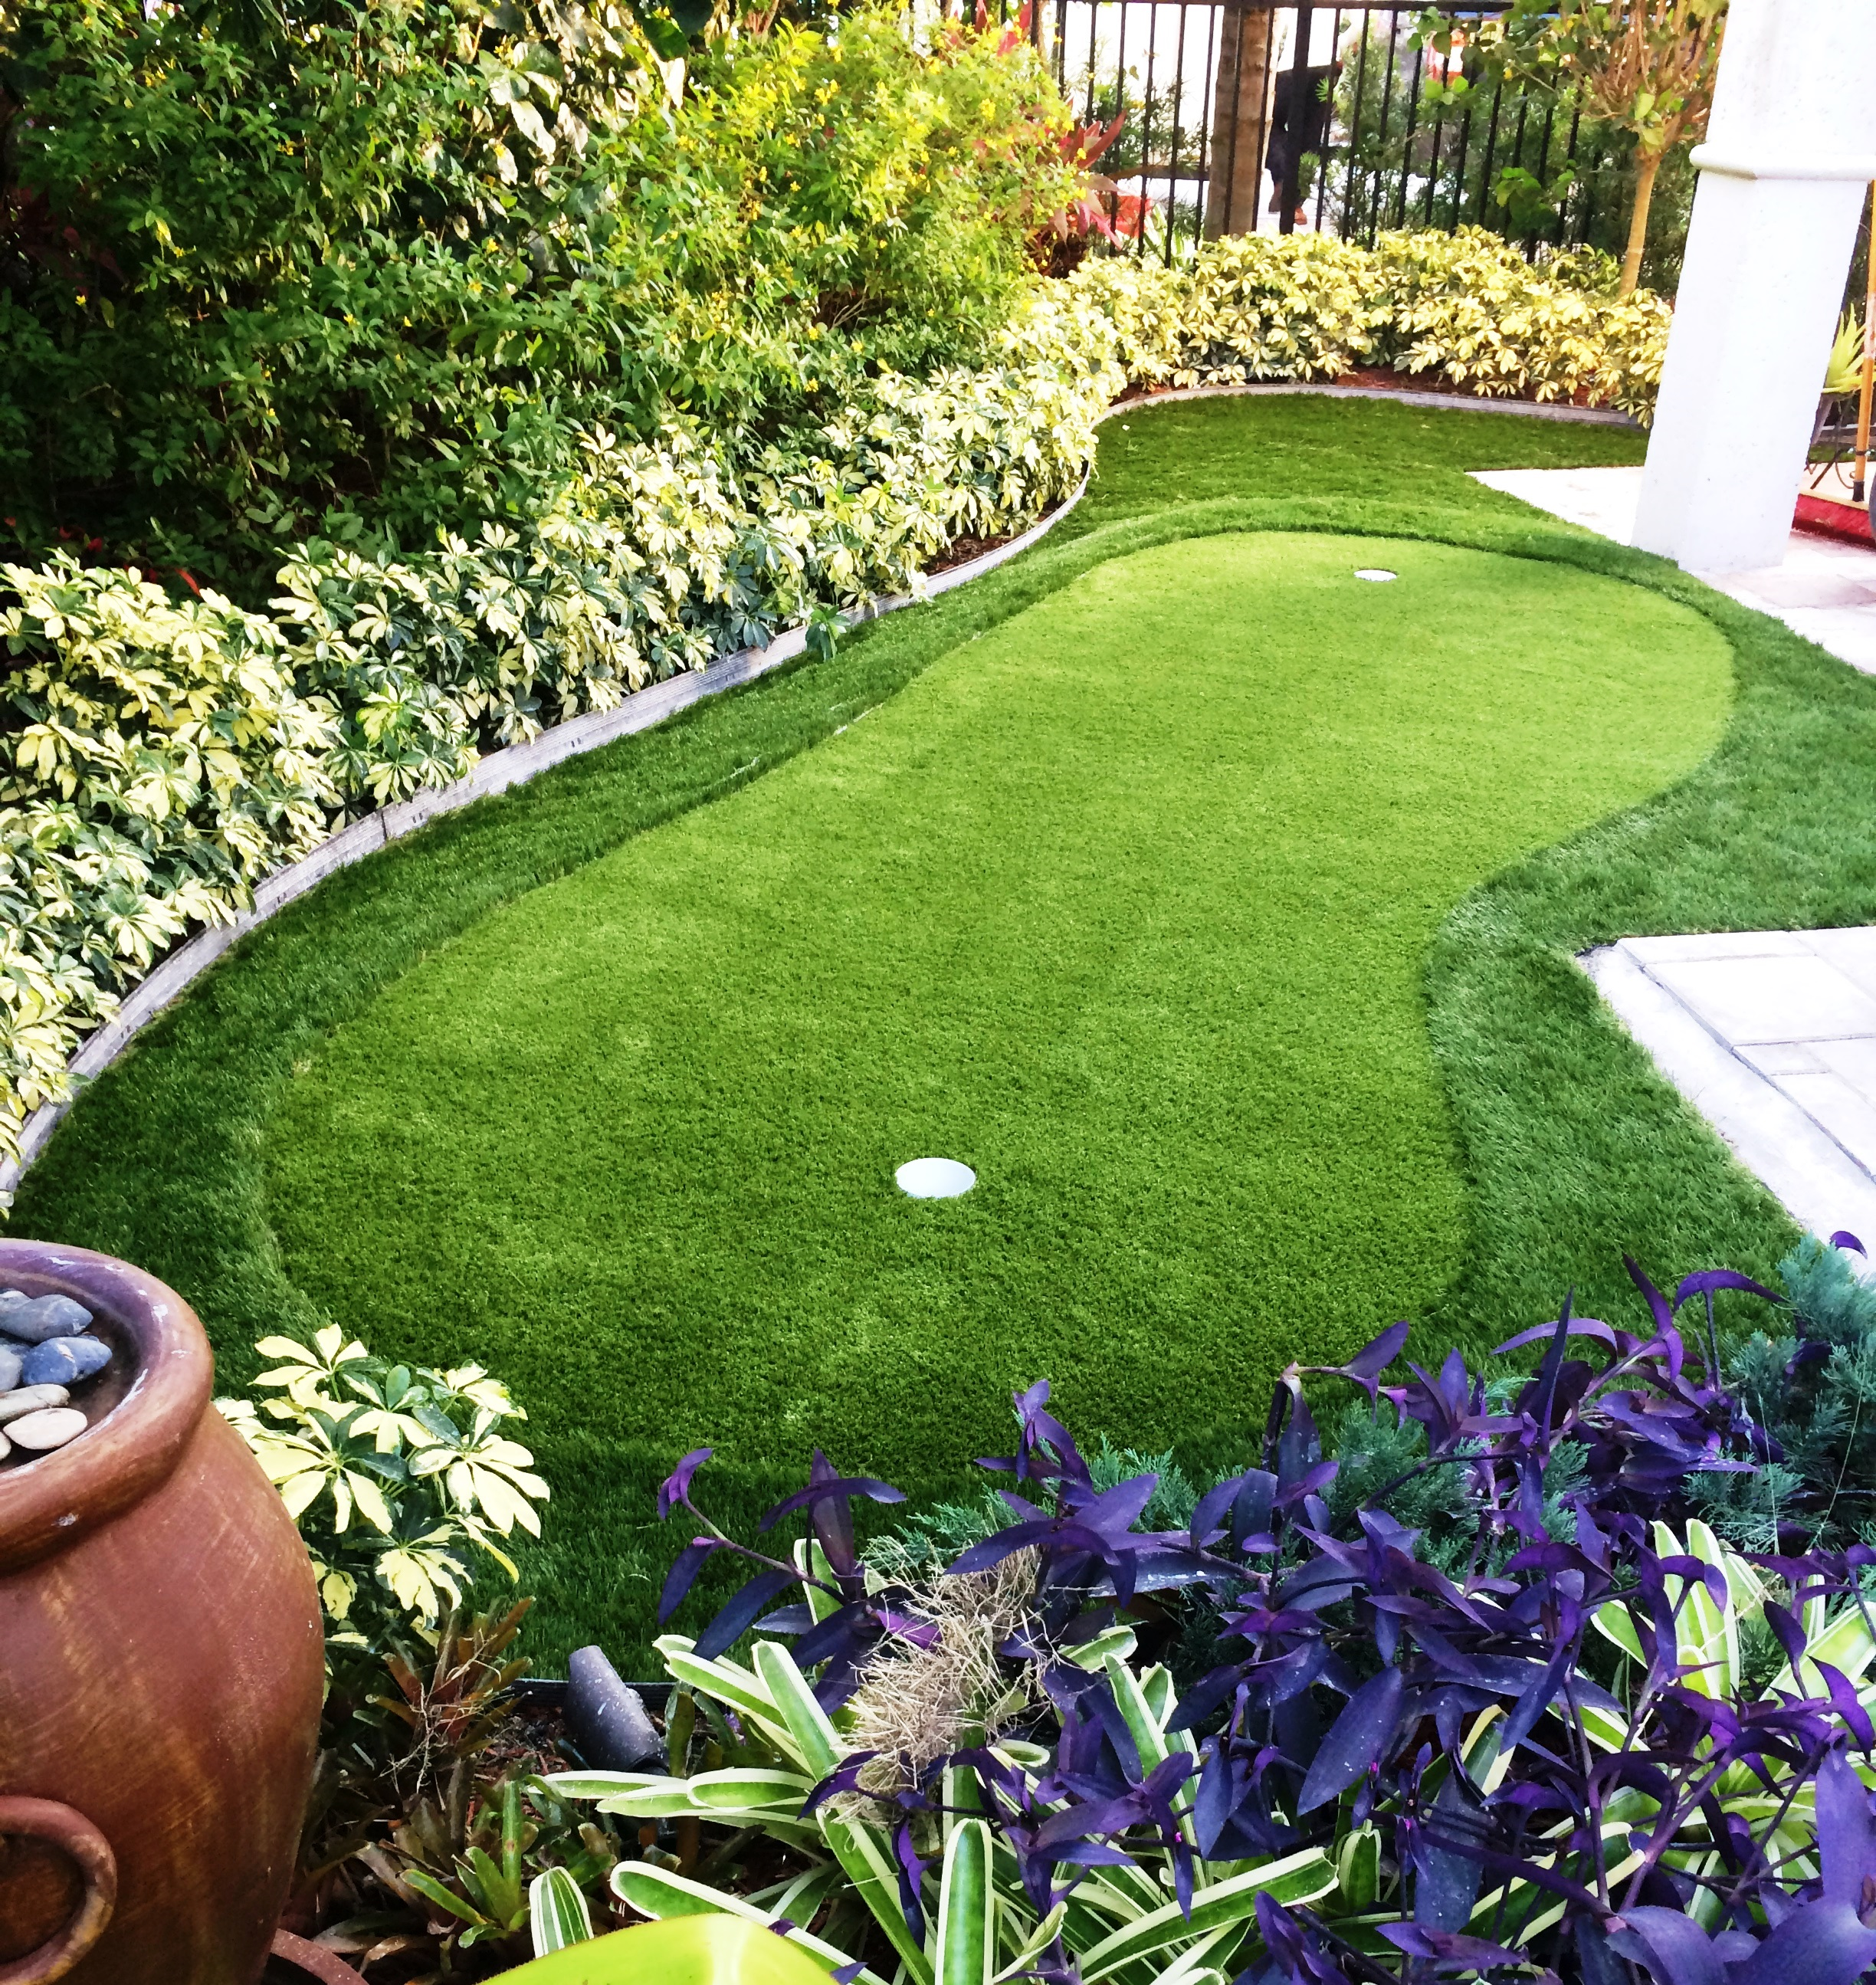 Backyard Landscaping Ideas, Time to Go Green Your Home ... on Putting Green Ideas For Backyard id=97738